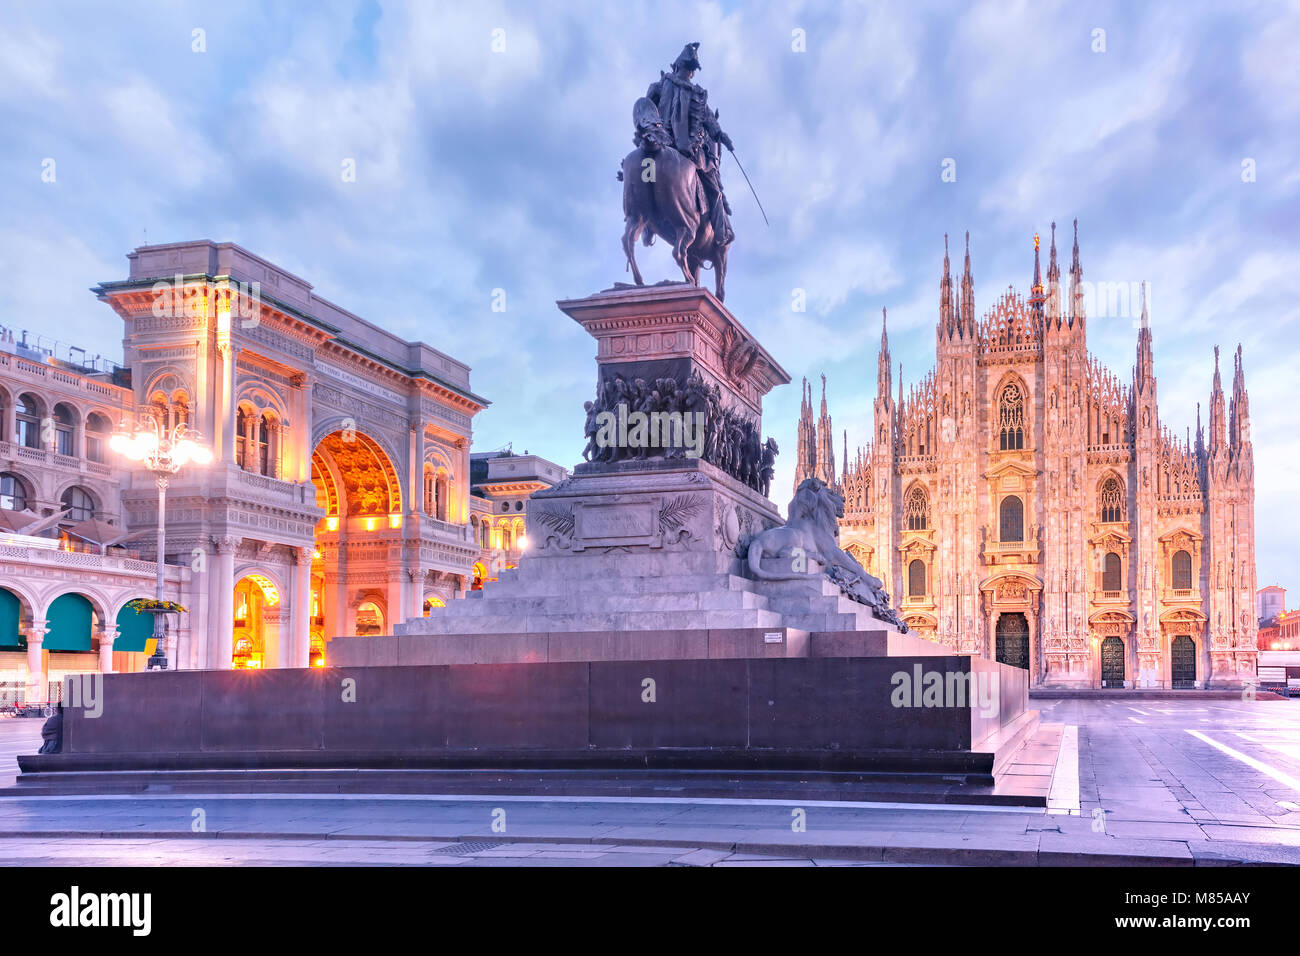 Night Piazza del Duomo in Milan, Italy Stock Photo